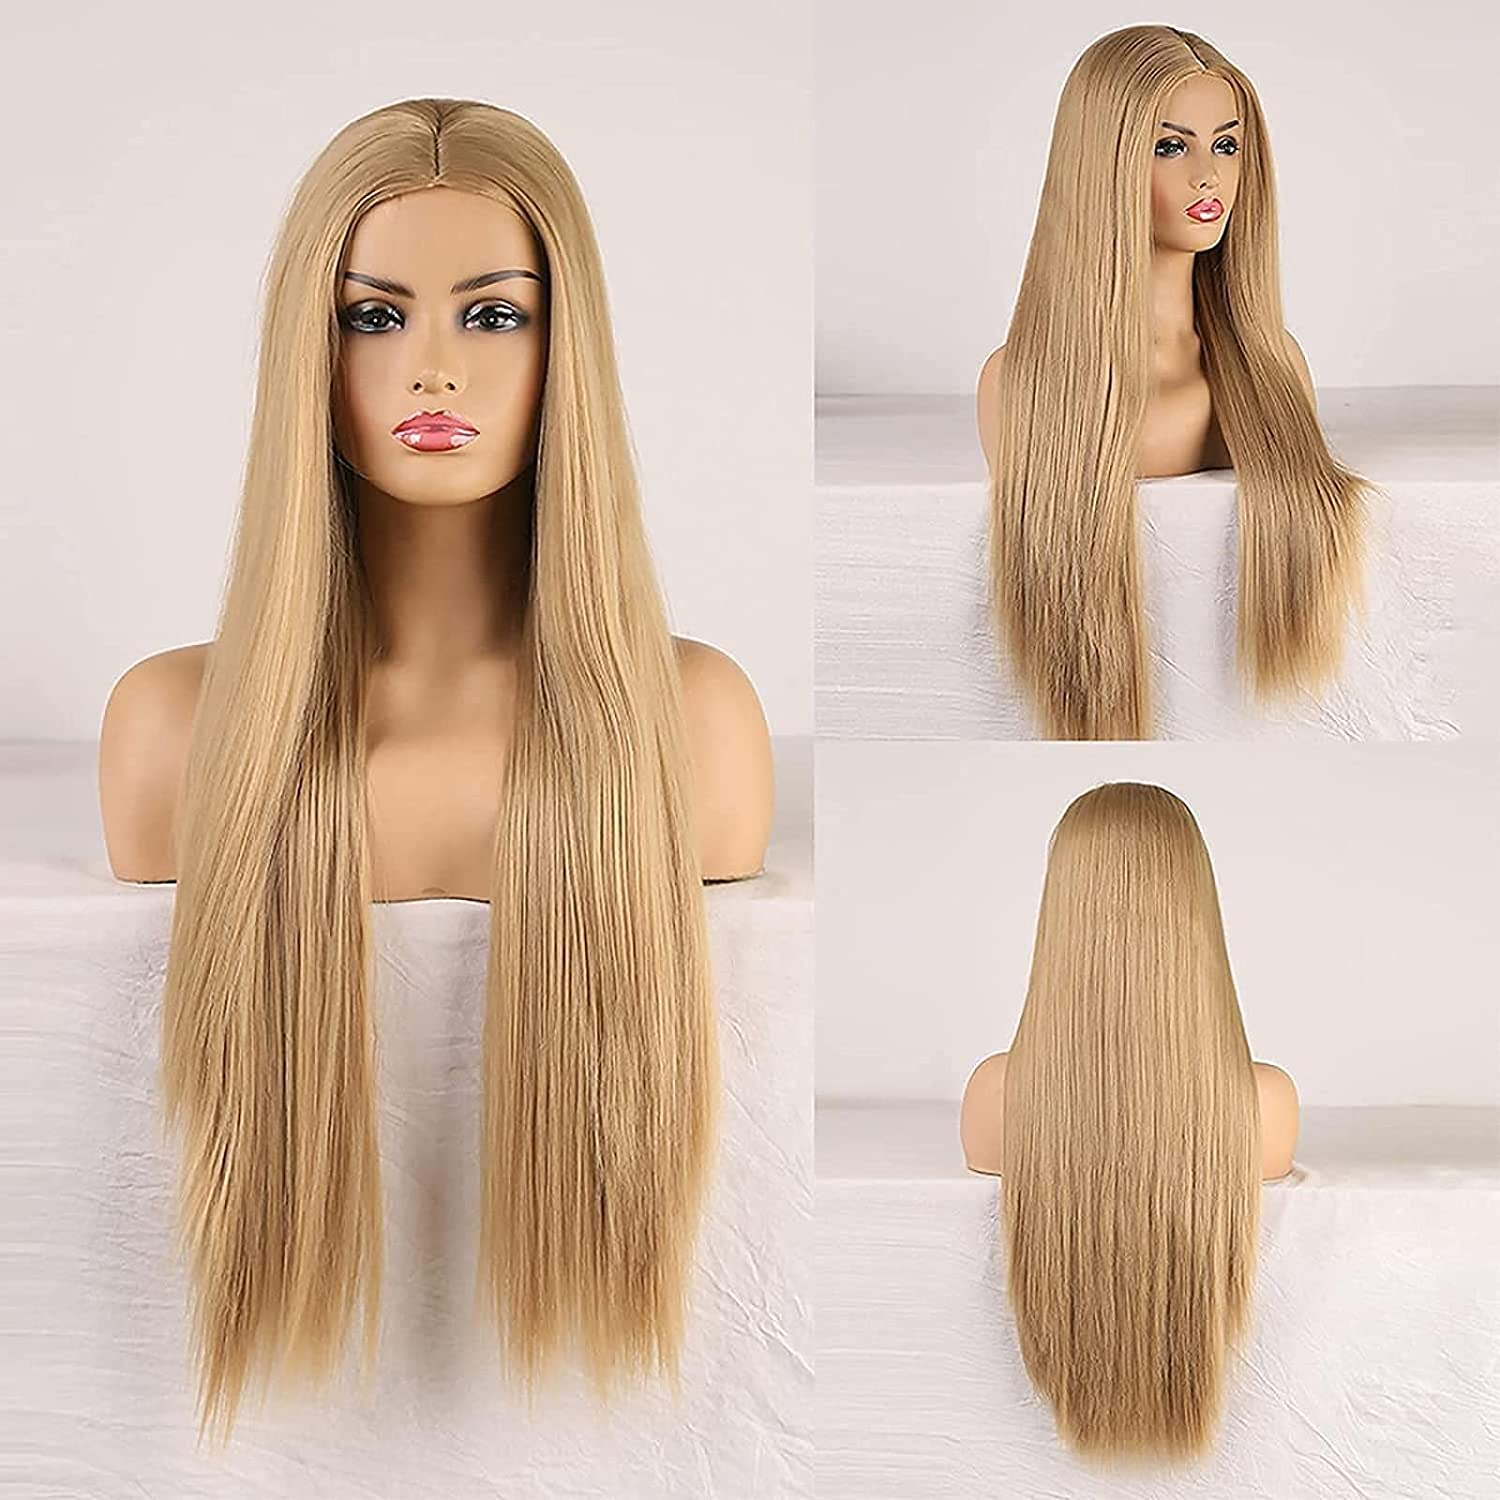 Cosplay Synthetic Hair Real 70% OFF Outlet Natural for Soft – Smooth T Luxury goods Women